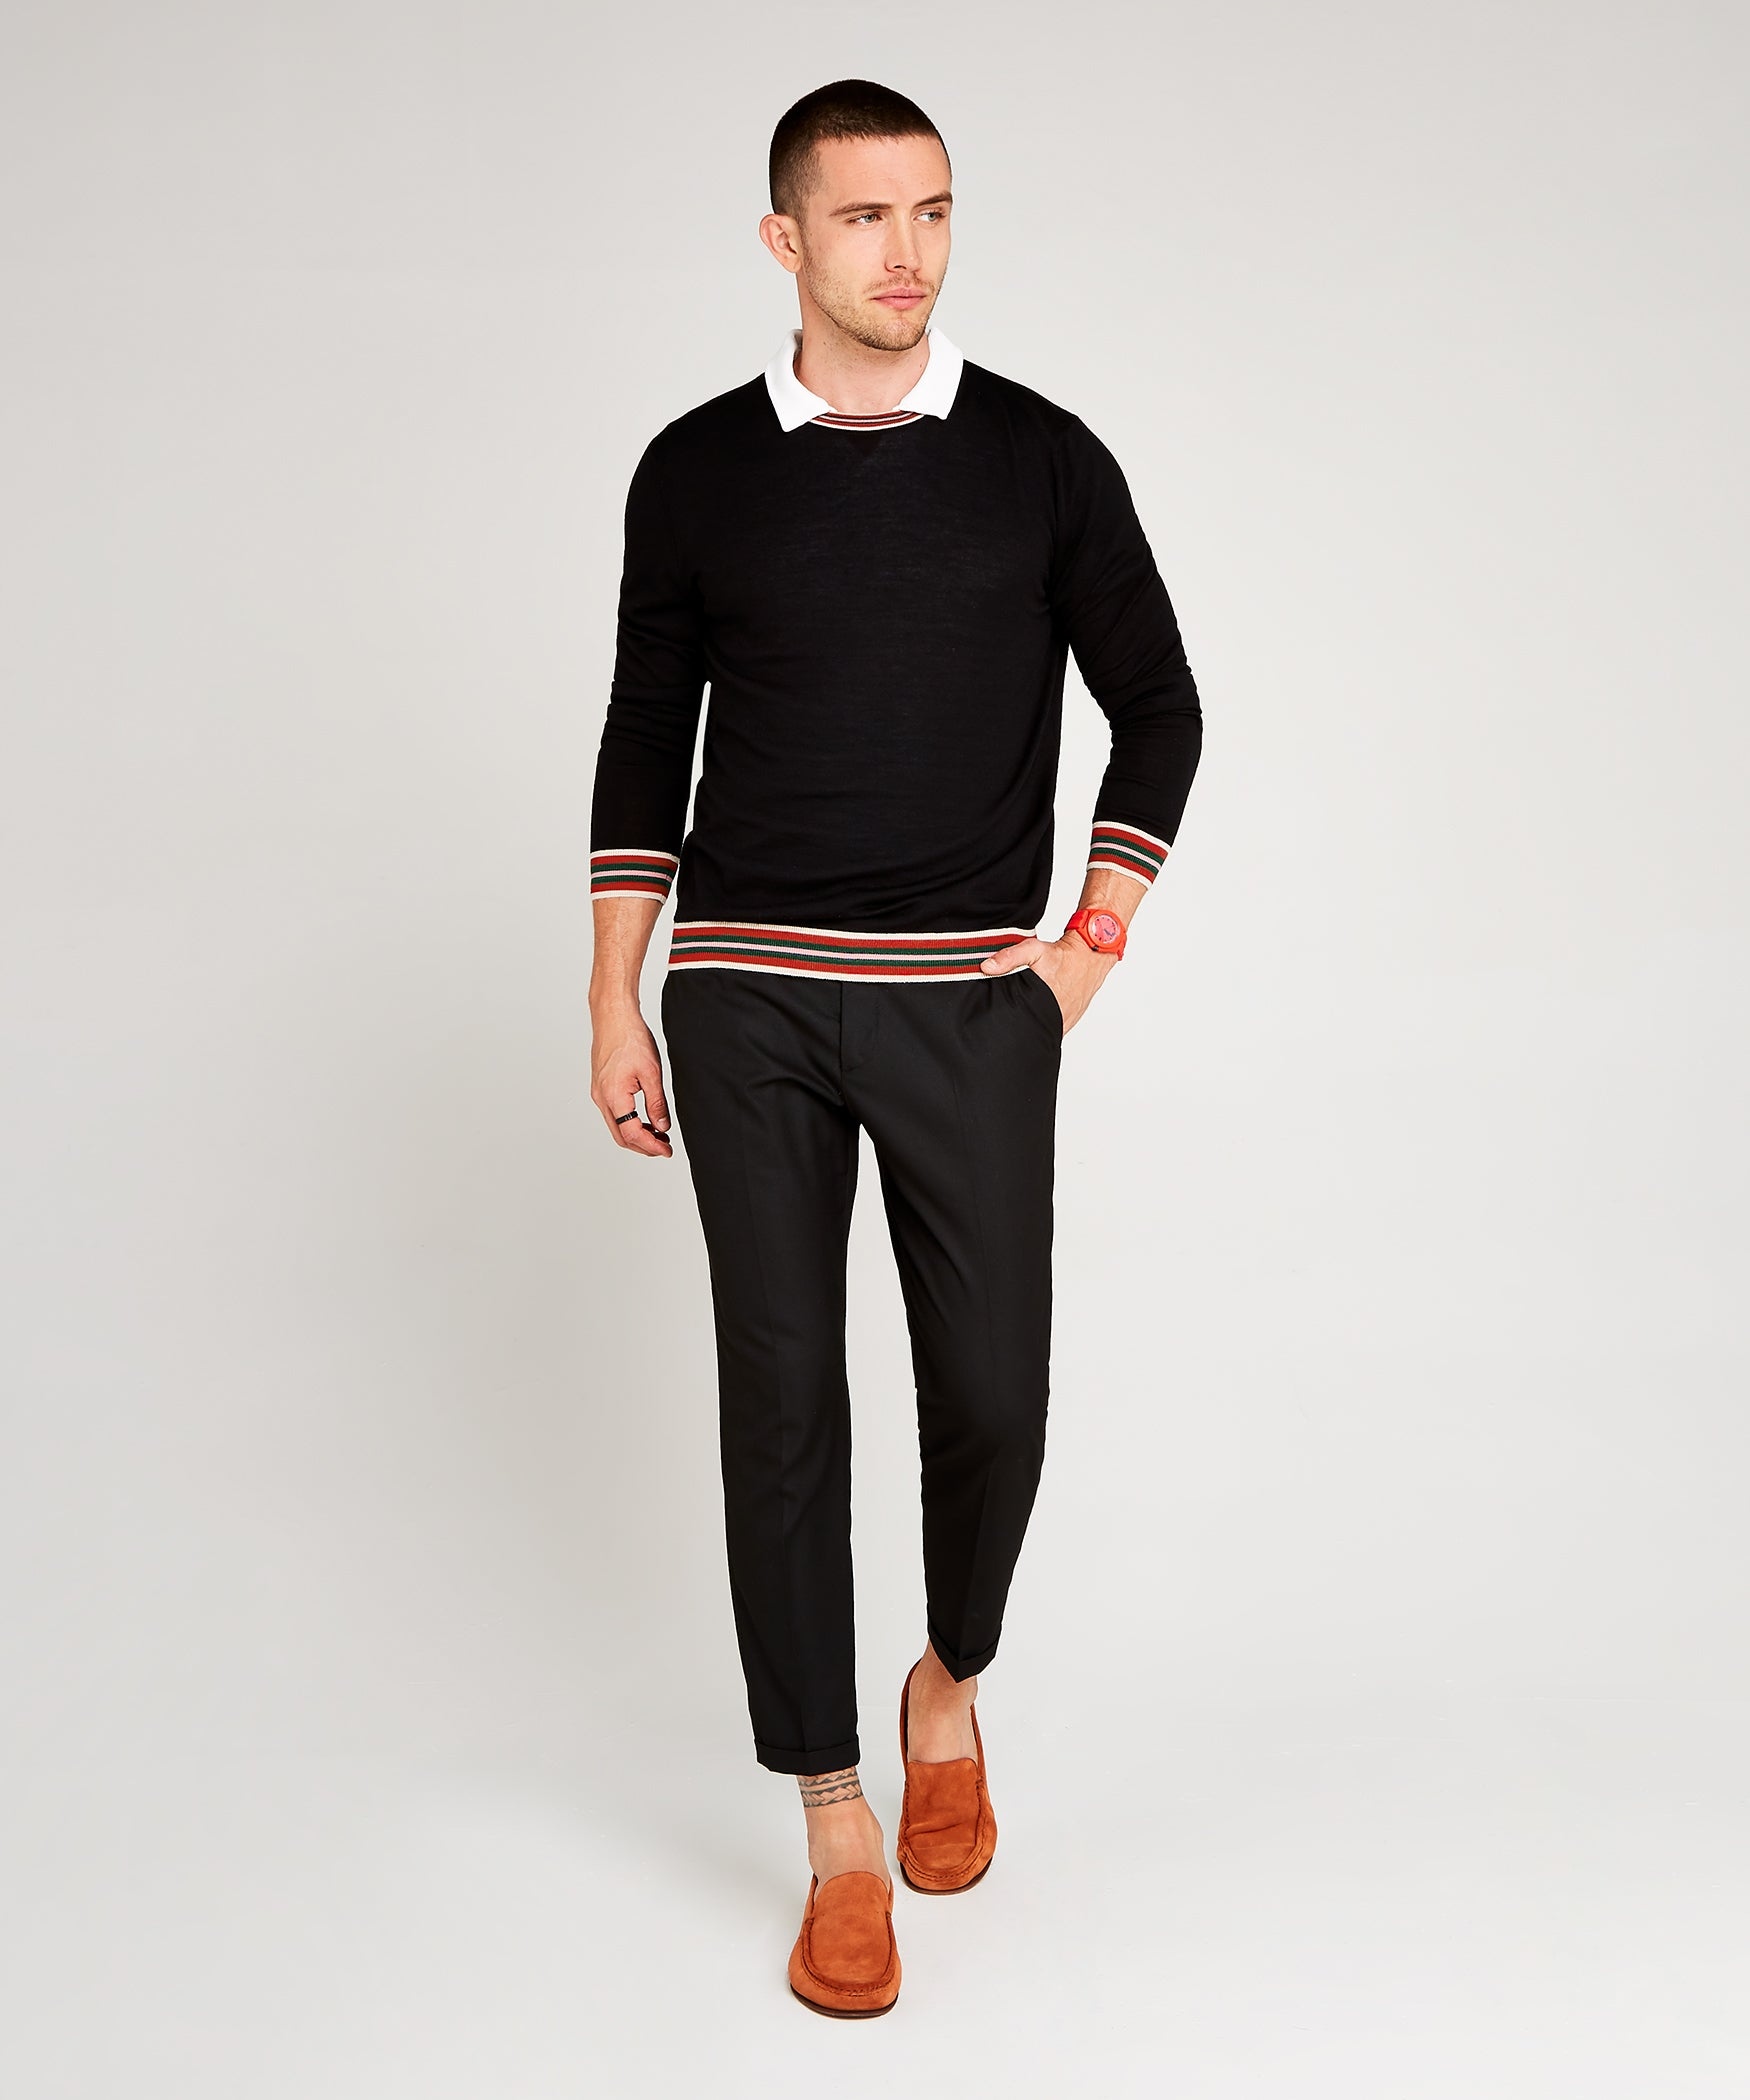 Black Extrafine Merino Crew Neck